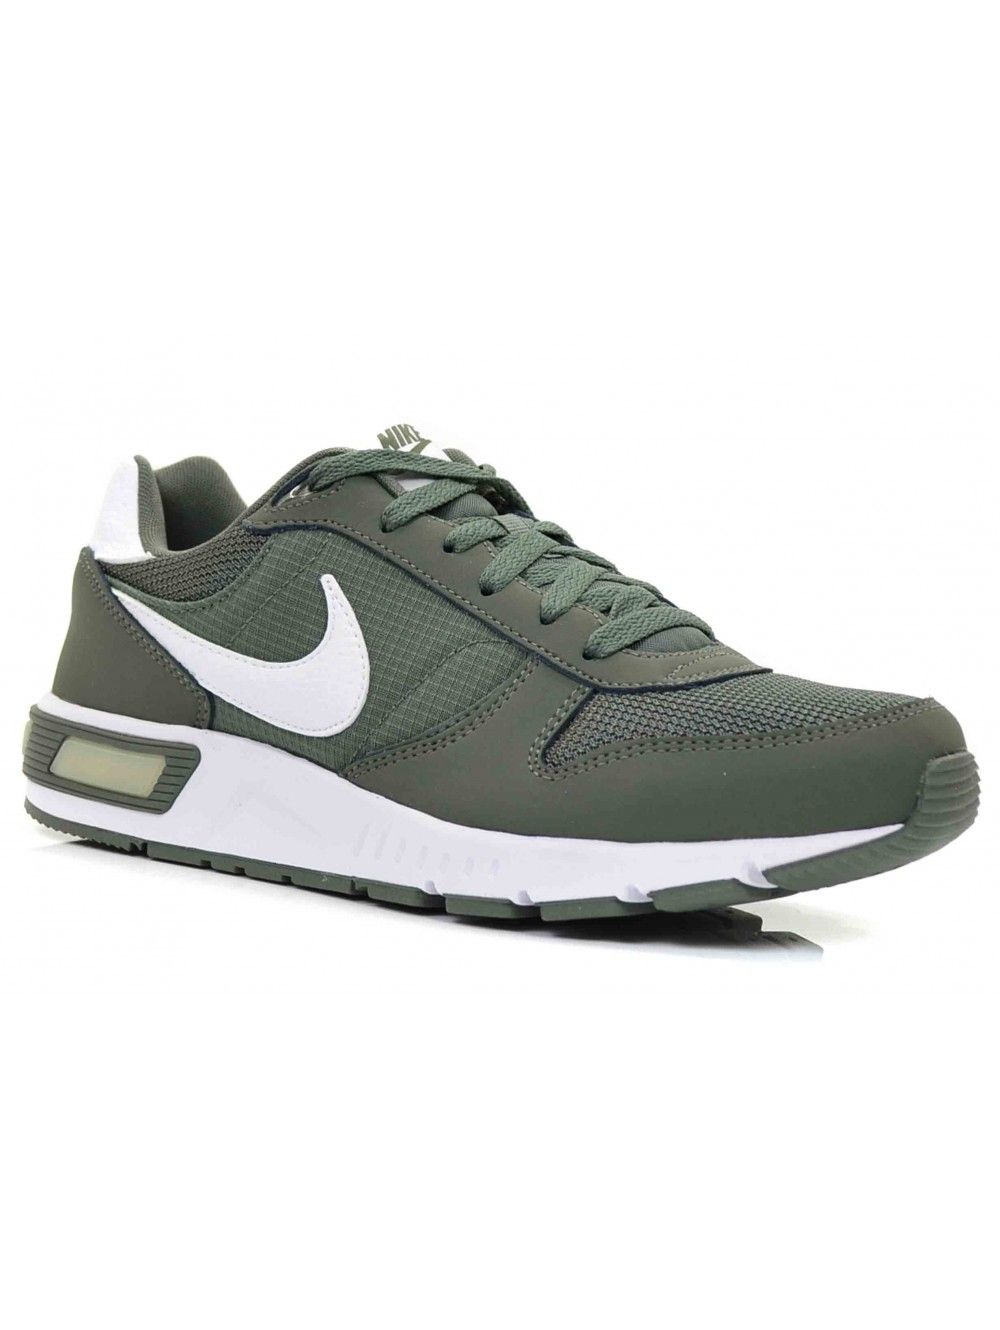 NIKE NIGHTGAZER HEREN SNEAKERS - ARMY WIT | SS15